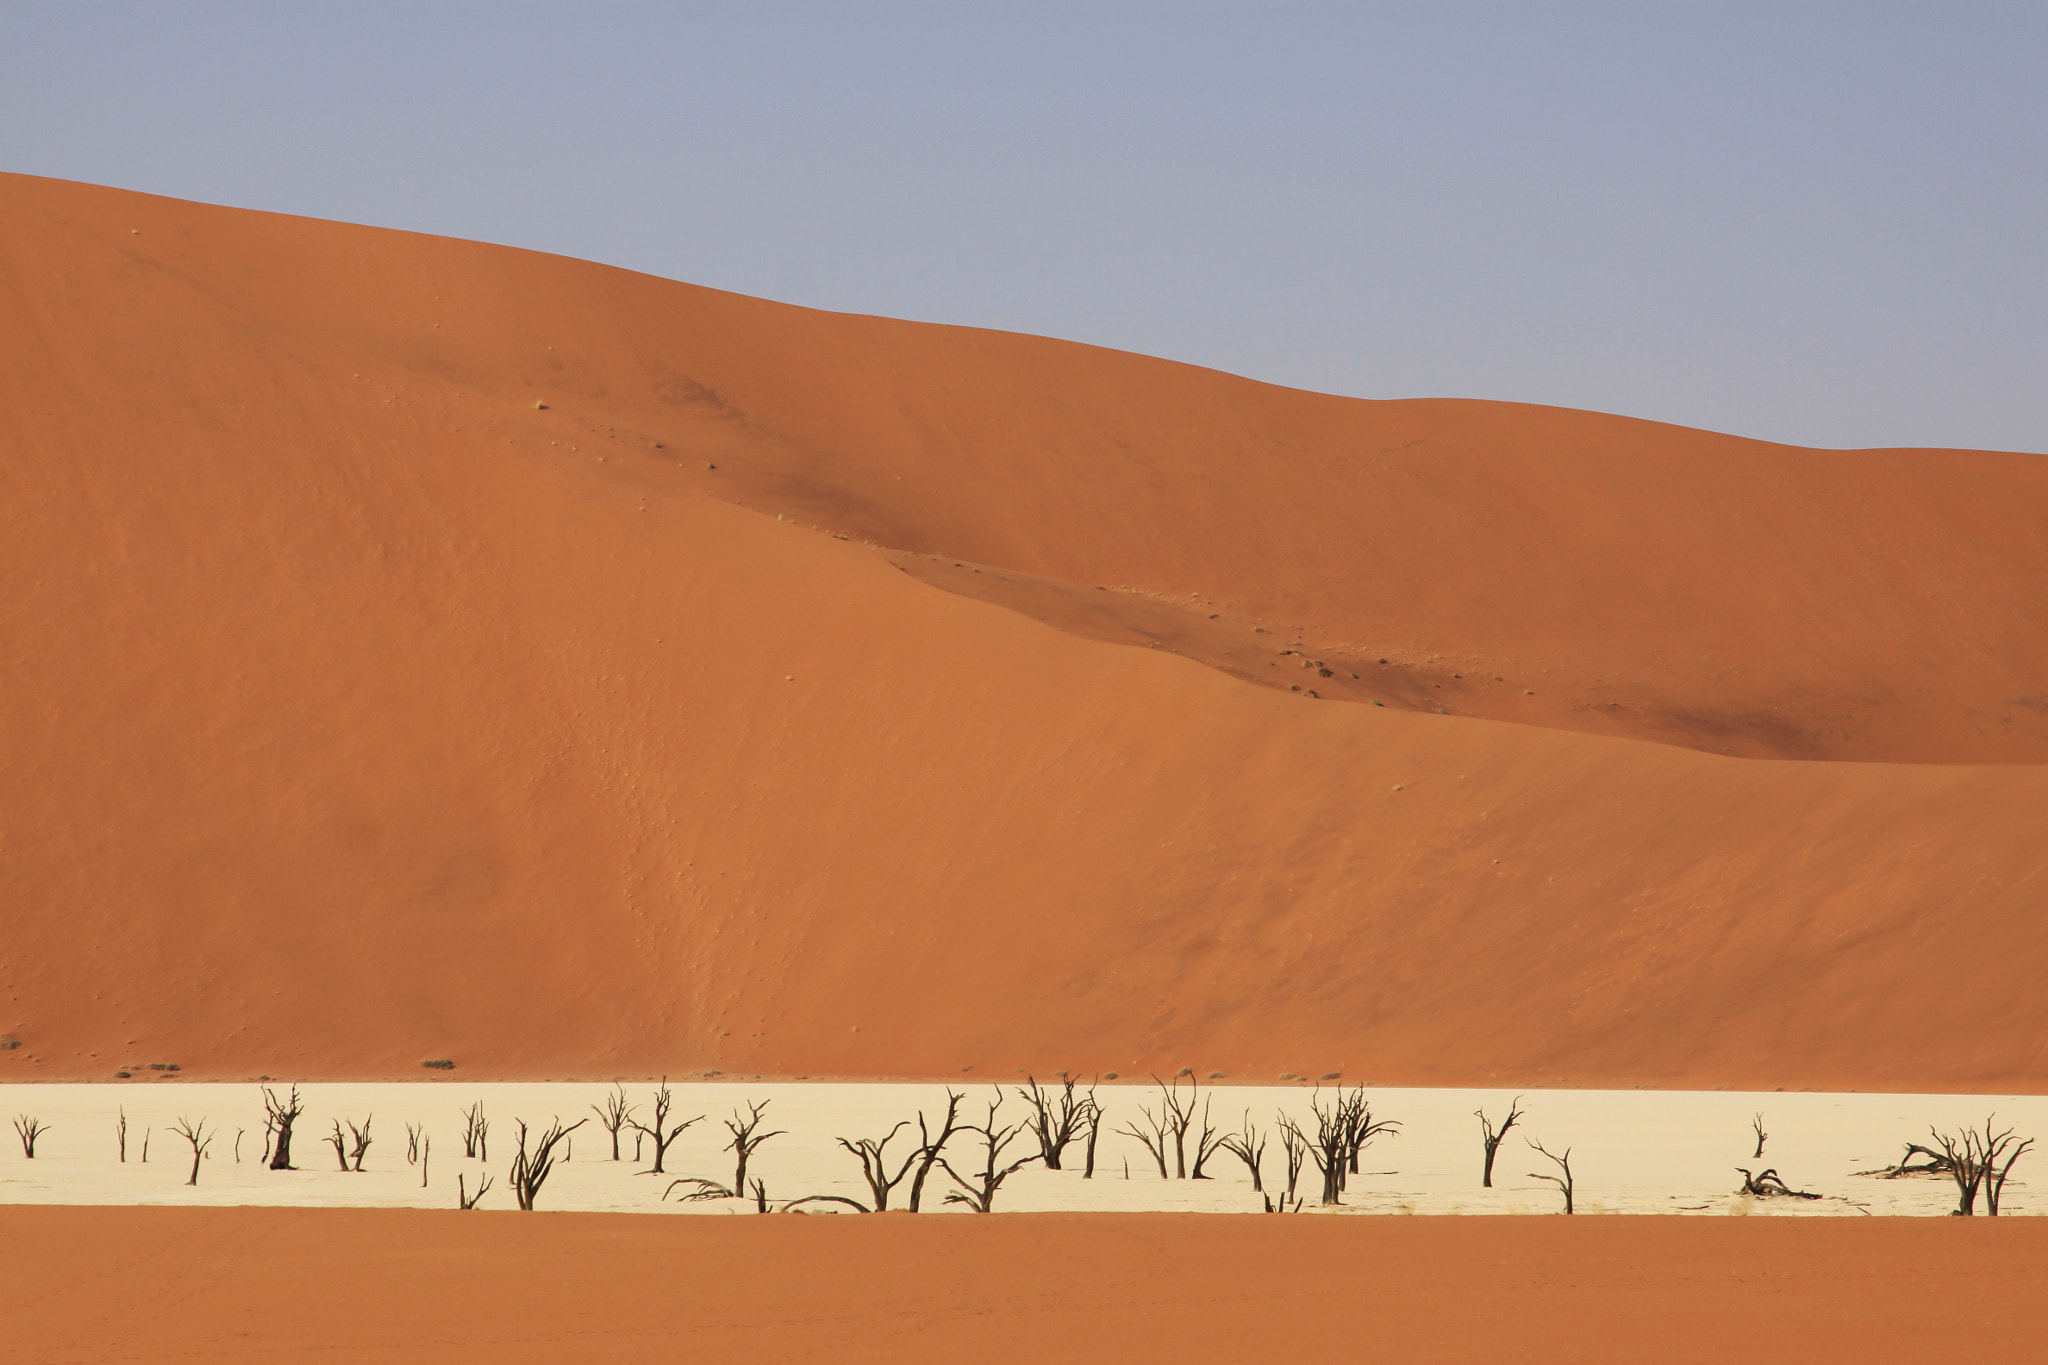 Photograph DEAD VLEI NAMIBIA by Alain Delvoye on 500px